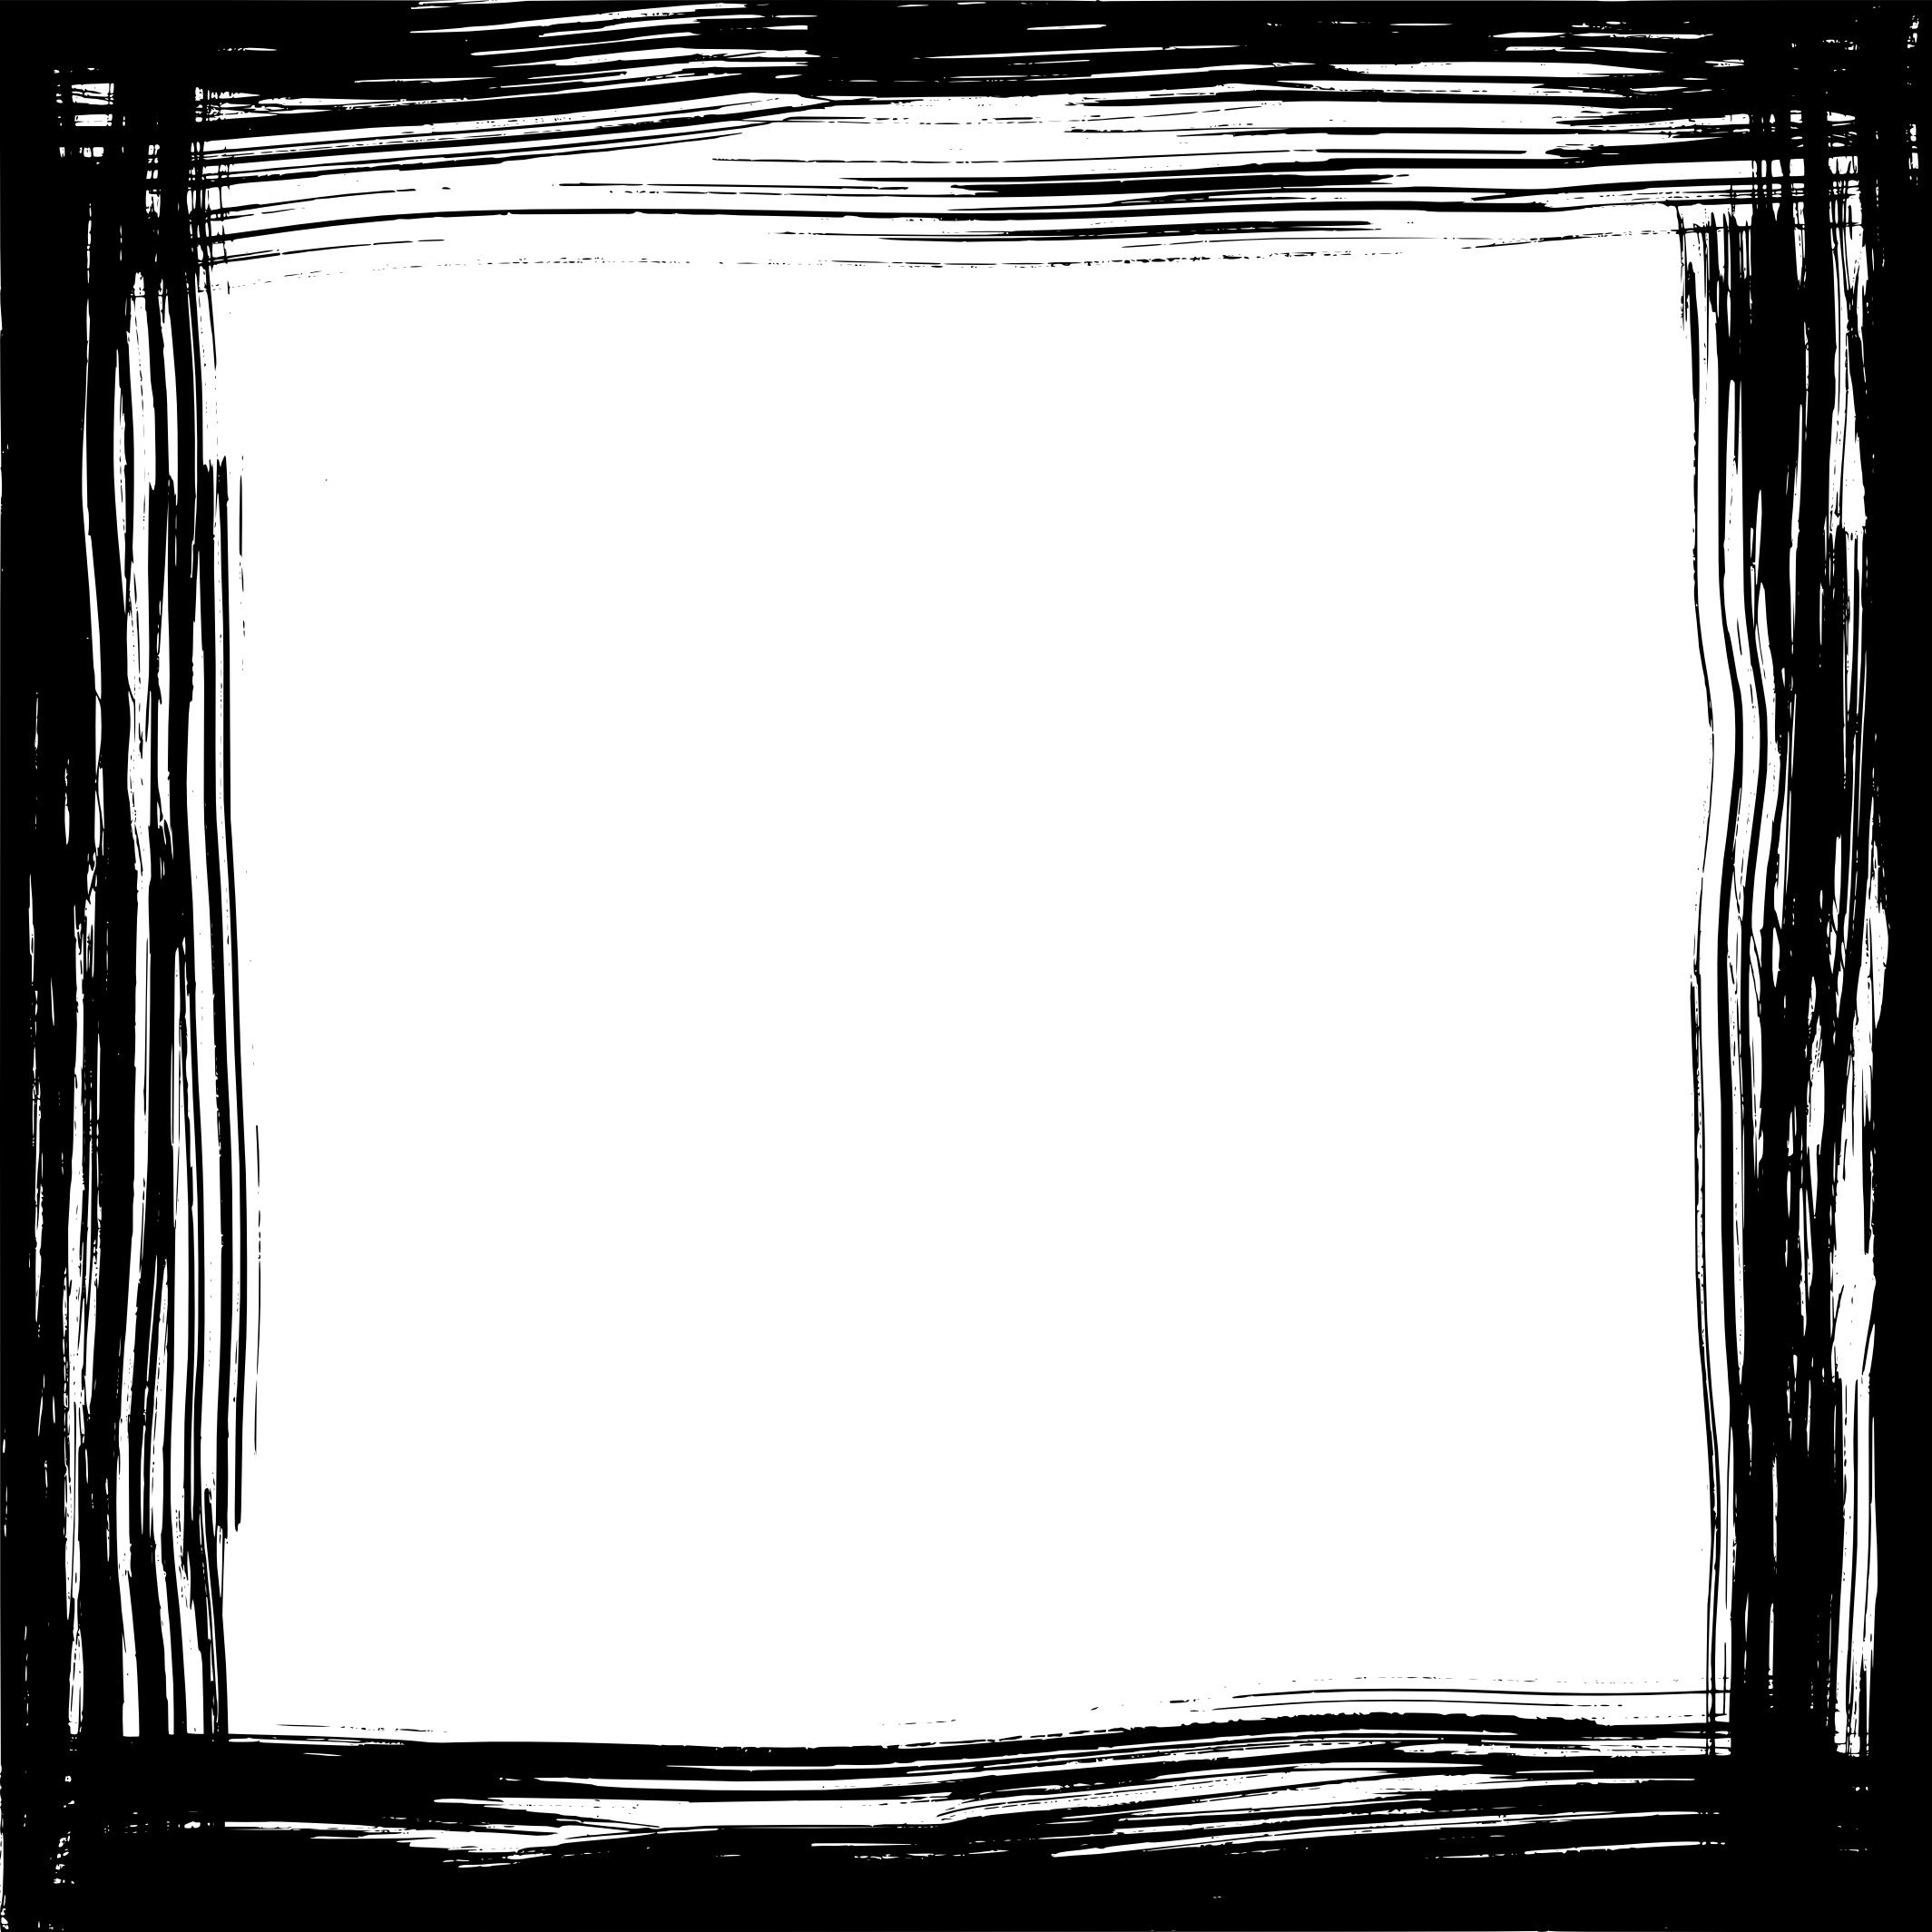 Square frame png.  grunge transparent vol